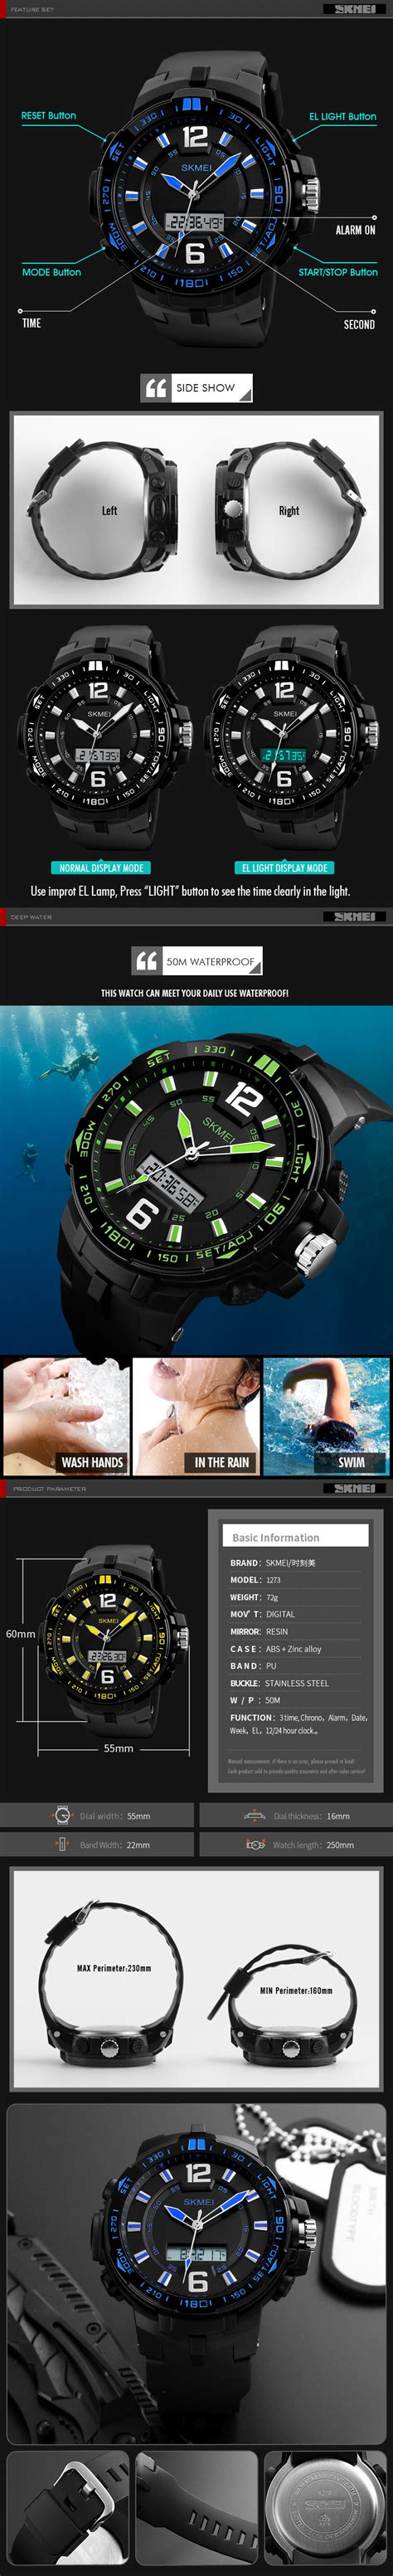 Skmei Smartwatch Wirstband Led D 21 Black skmei 1273 outdoor digital 50m waterproof multifunction fashionable led wristwatches